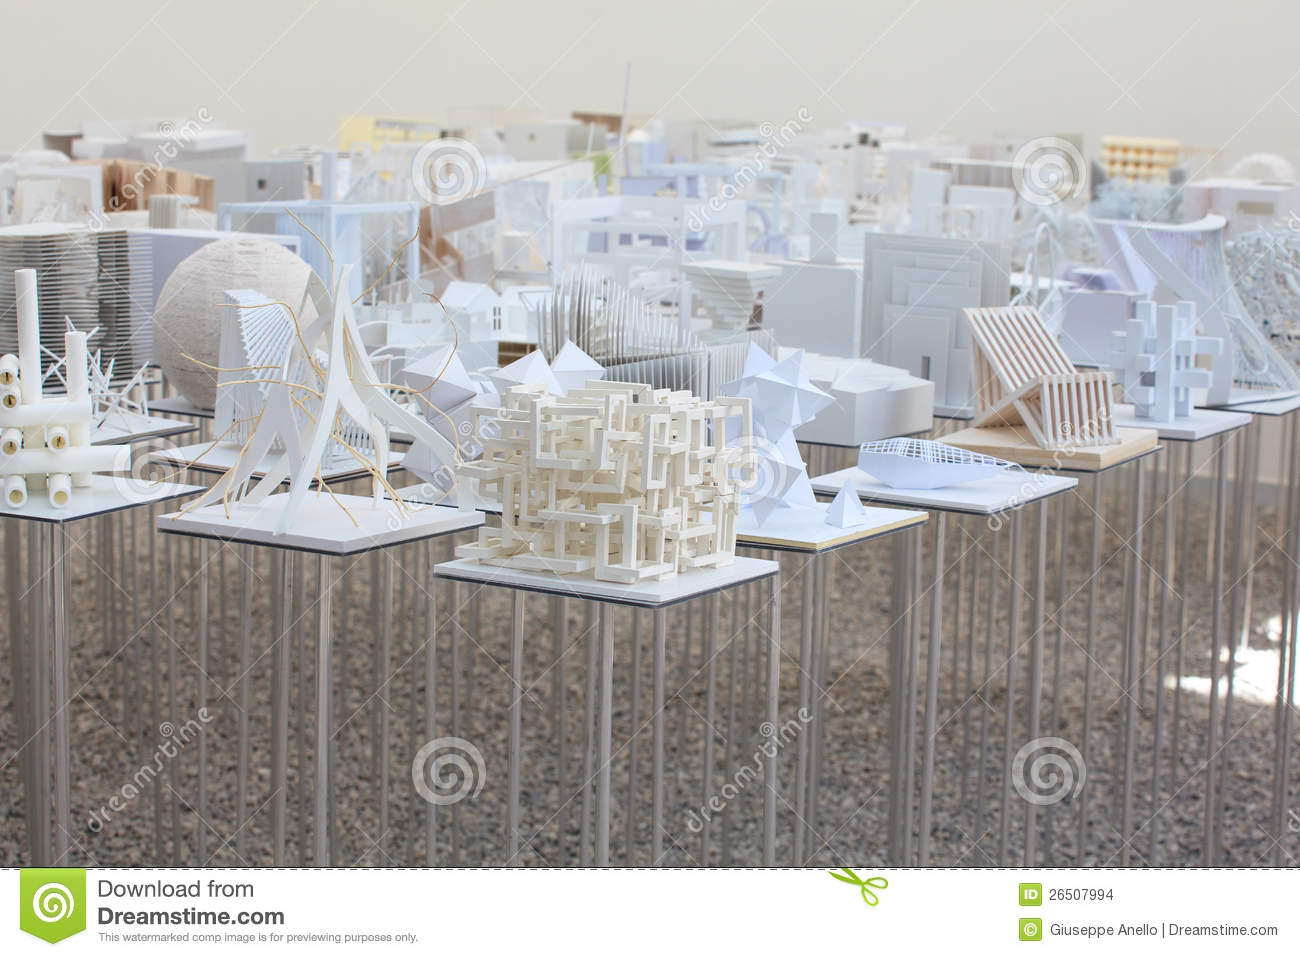 Architecture student models editorial stock image image for Architecture student